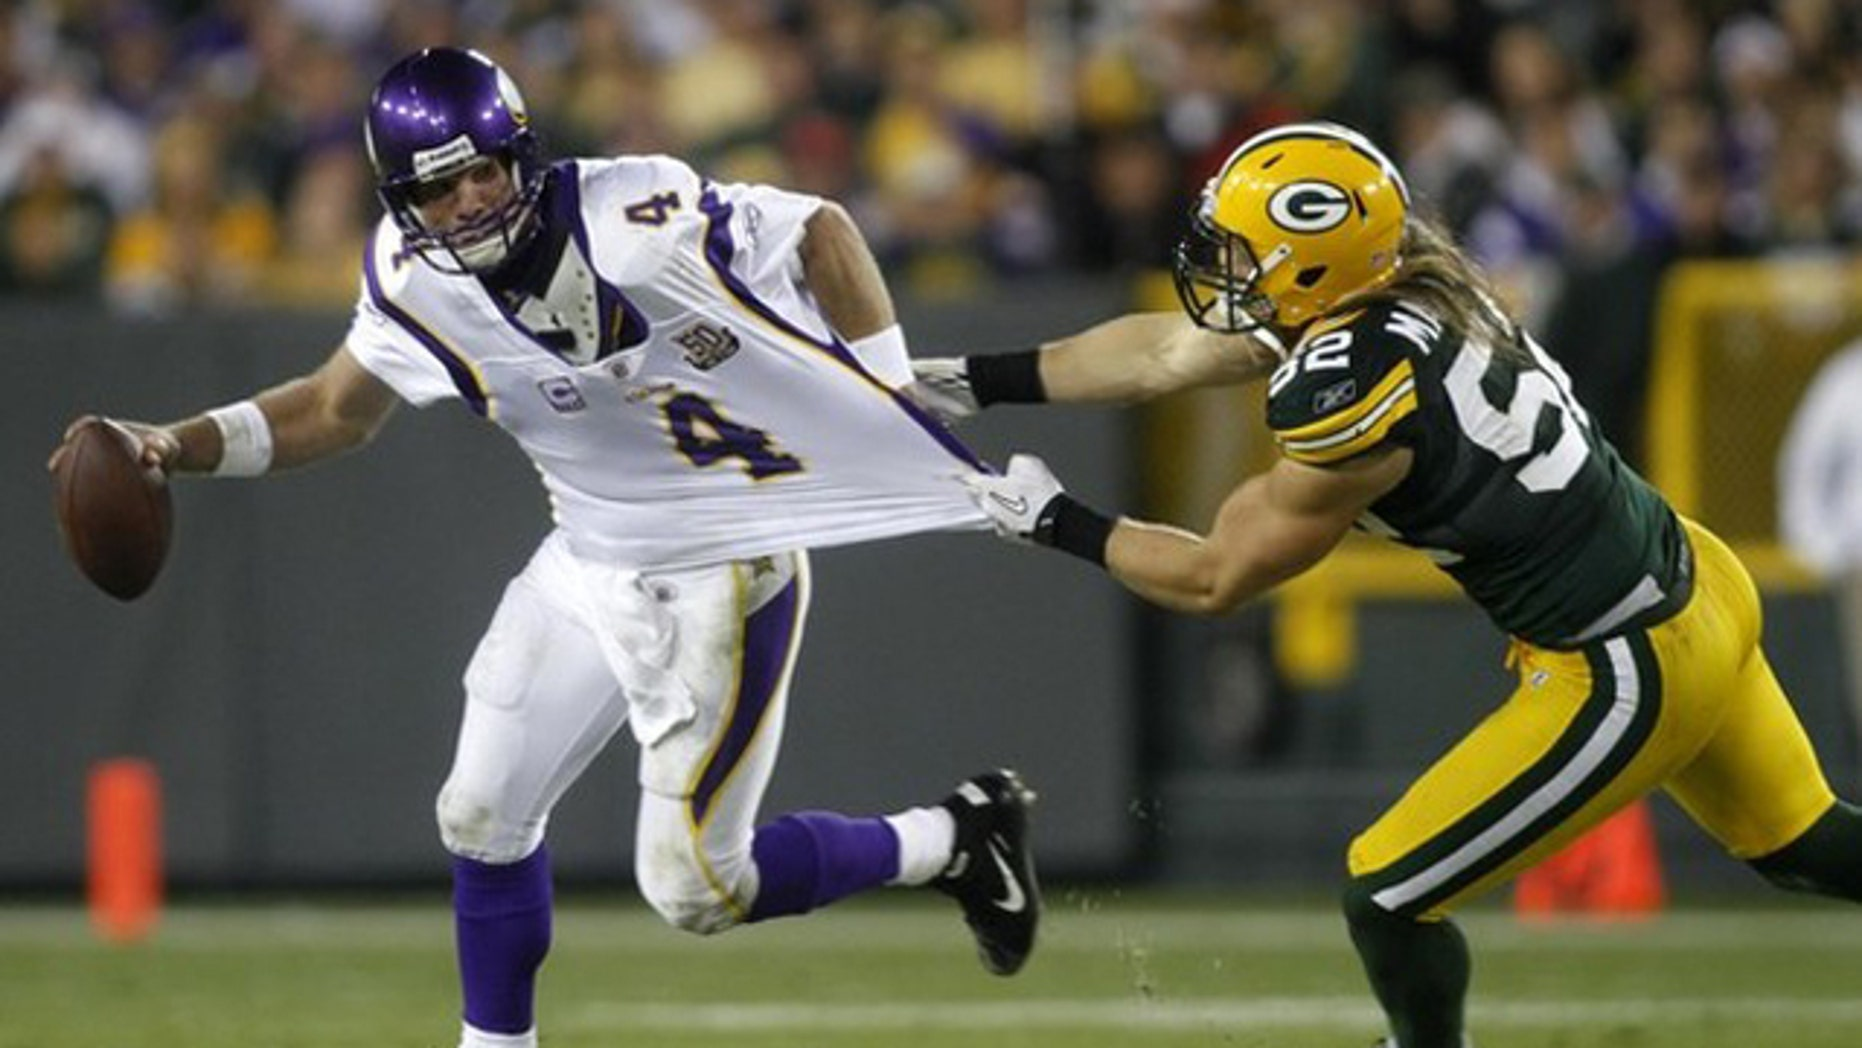 Oct. 24: Green Bay Packers linebacker Clay Matthews (52) attempts to tackle Minnesota Vikings quarterback Brett Favre (4) in the fourth quarter of their NFL football game at Lambeau Field Green Bay, Wisconsin.